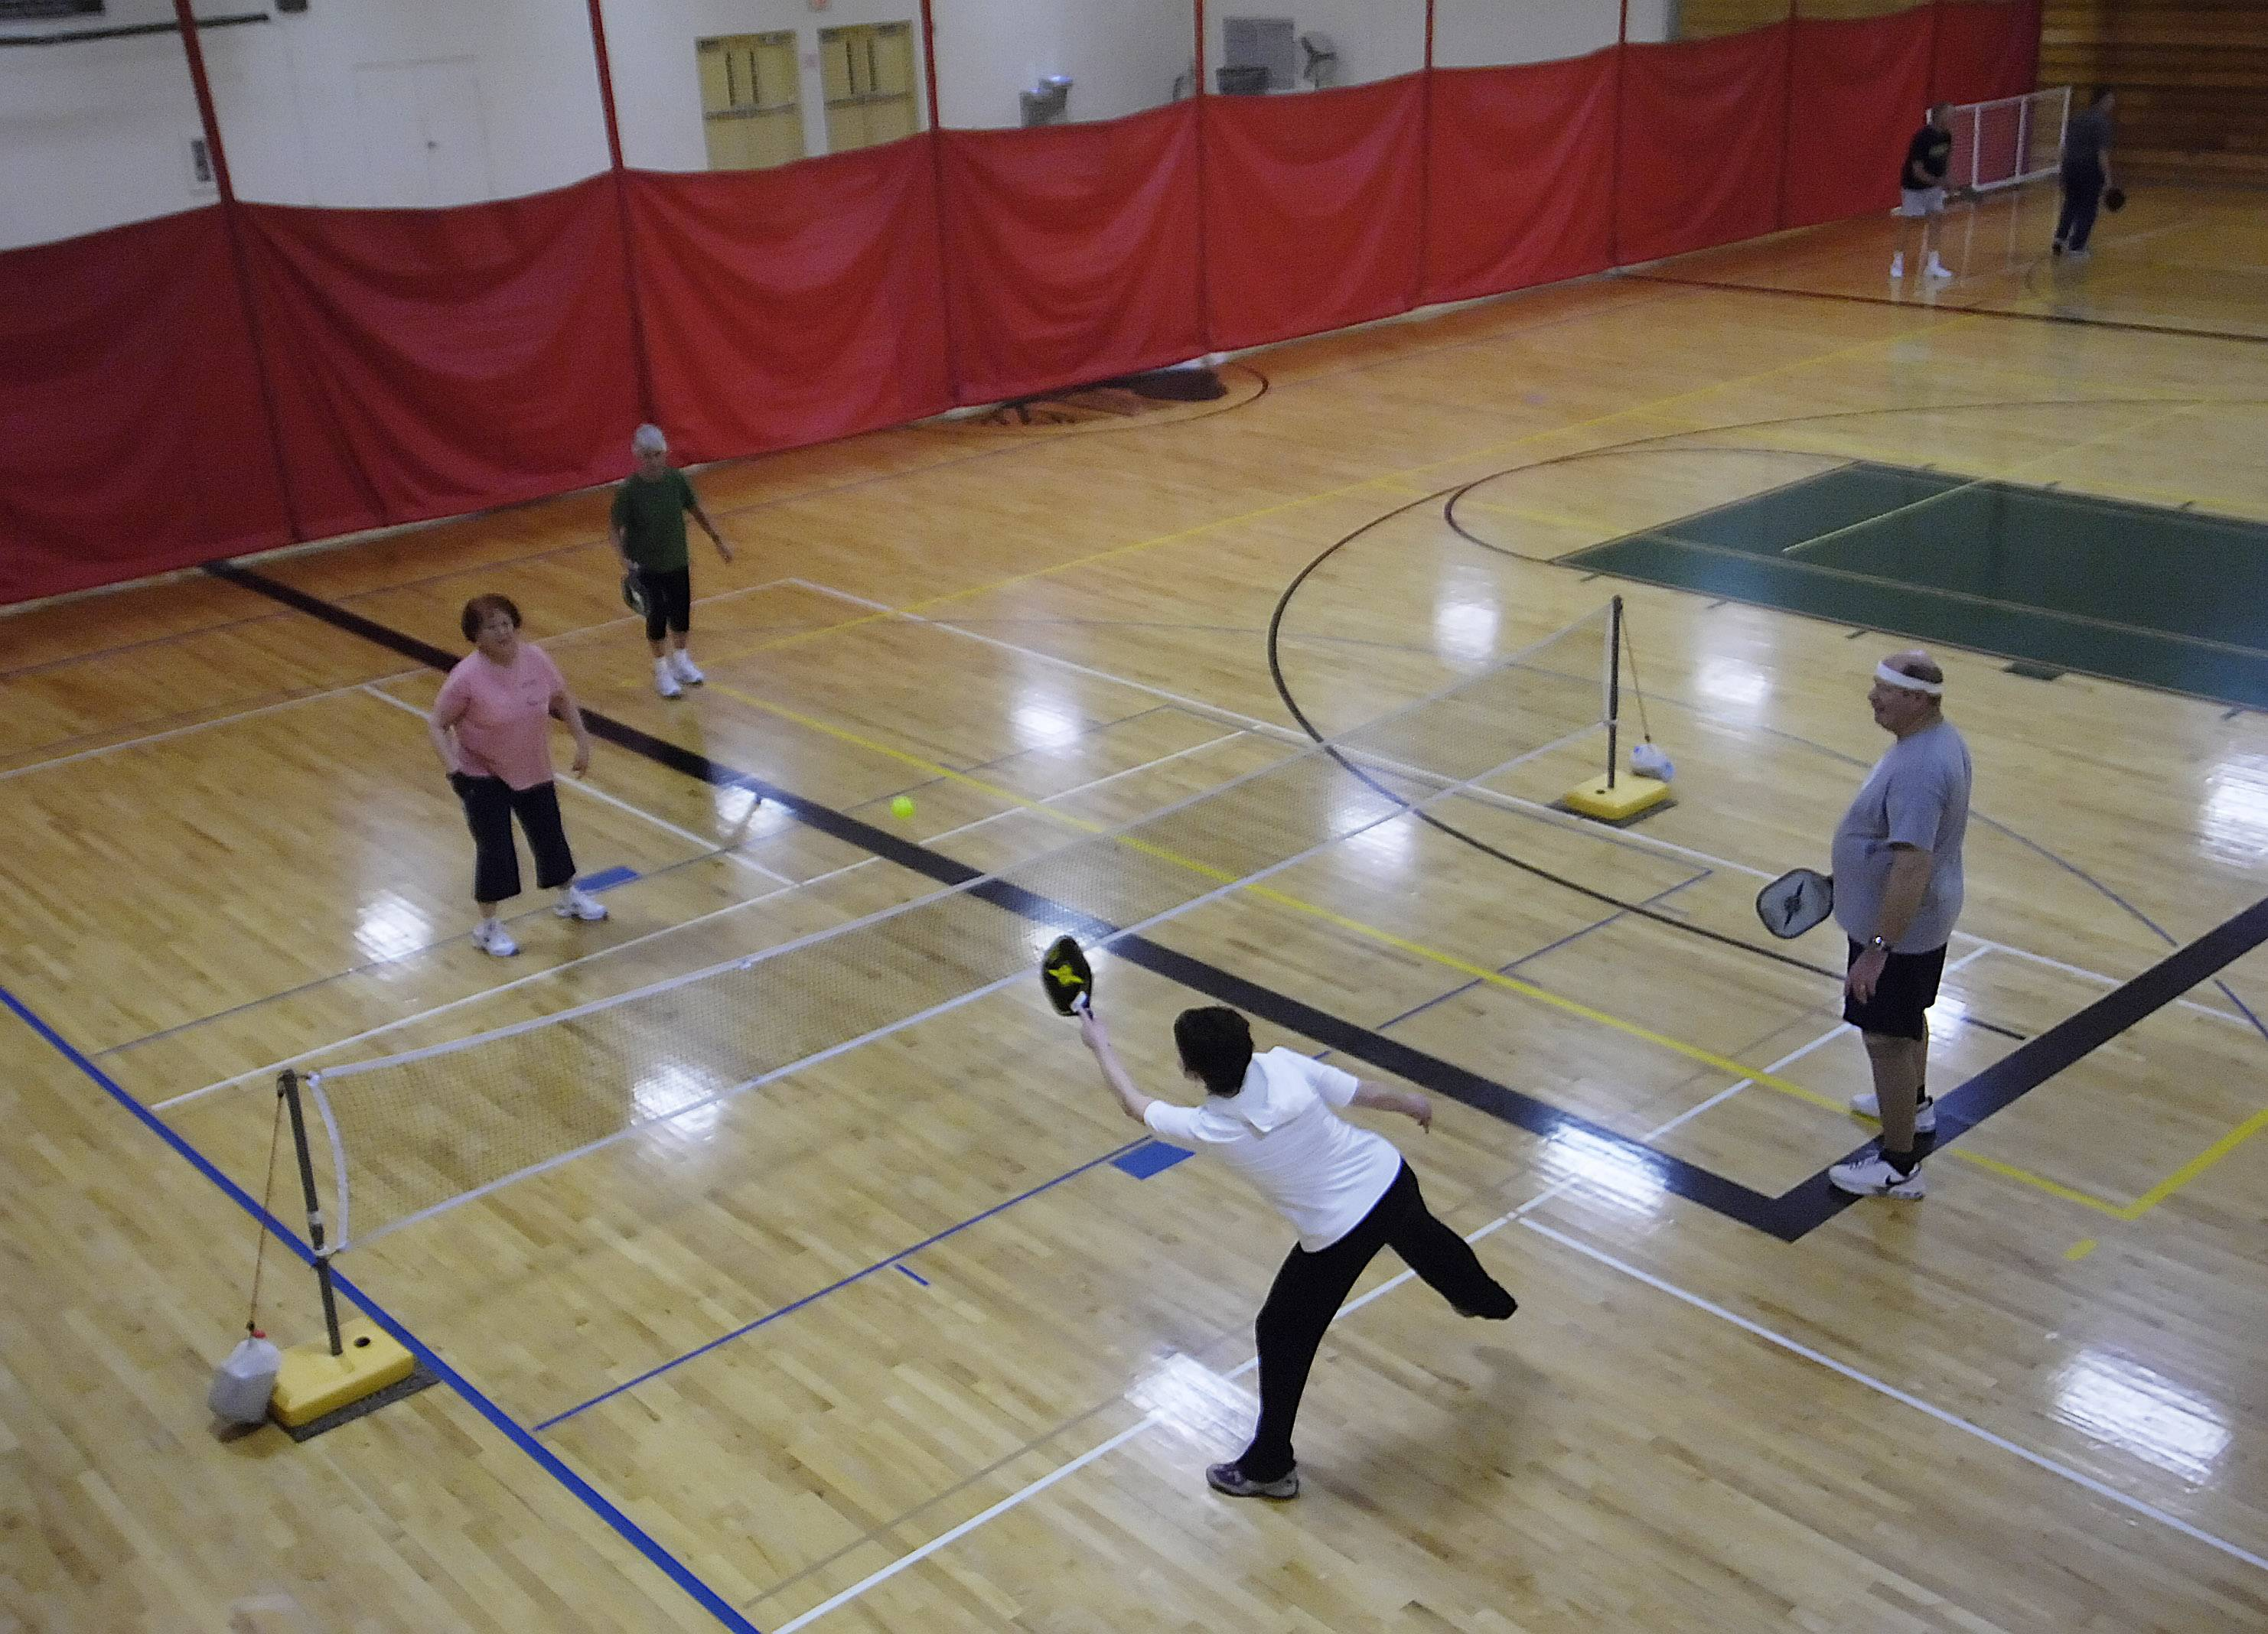 Growing interest in pickleball sparks call for advisory committee in Fremont Township